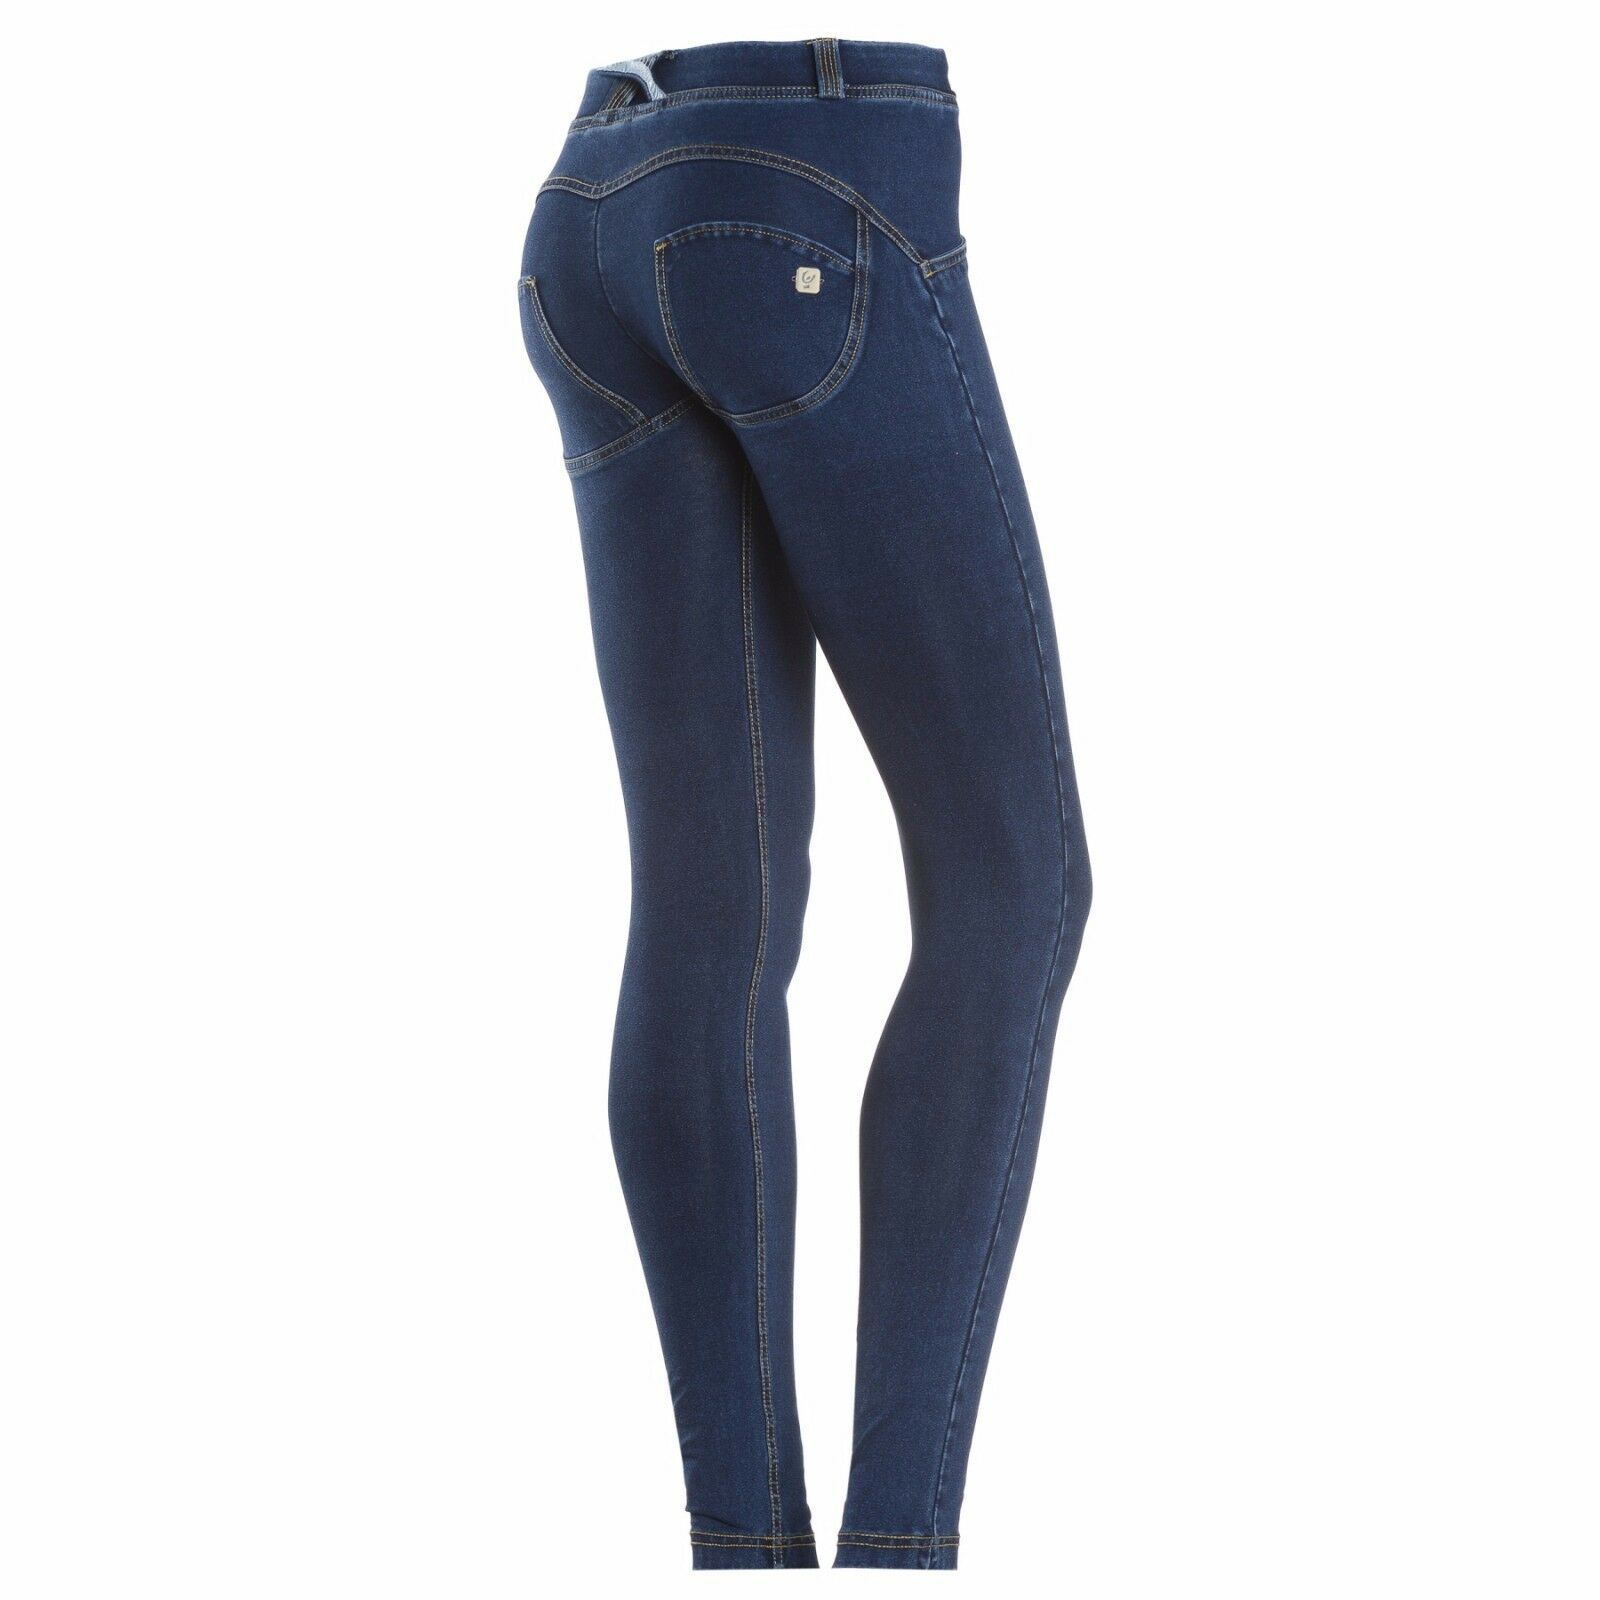 FREDDY WR.UP PANTALONE JEANS PUSH UP WRUP1RJ01E + BODY OMAGGIO VITA REGULAR